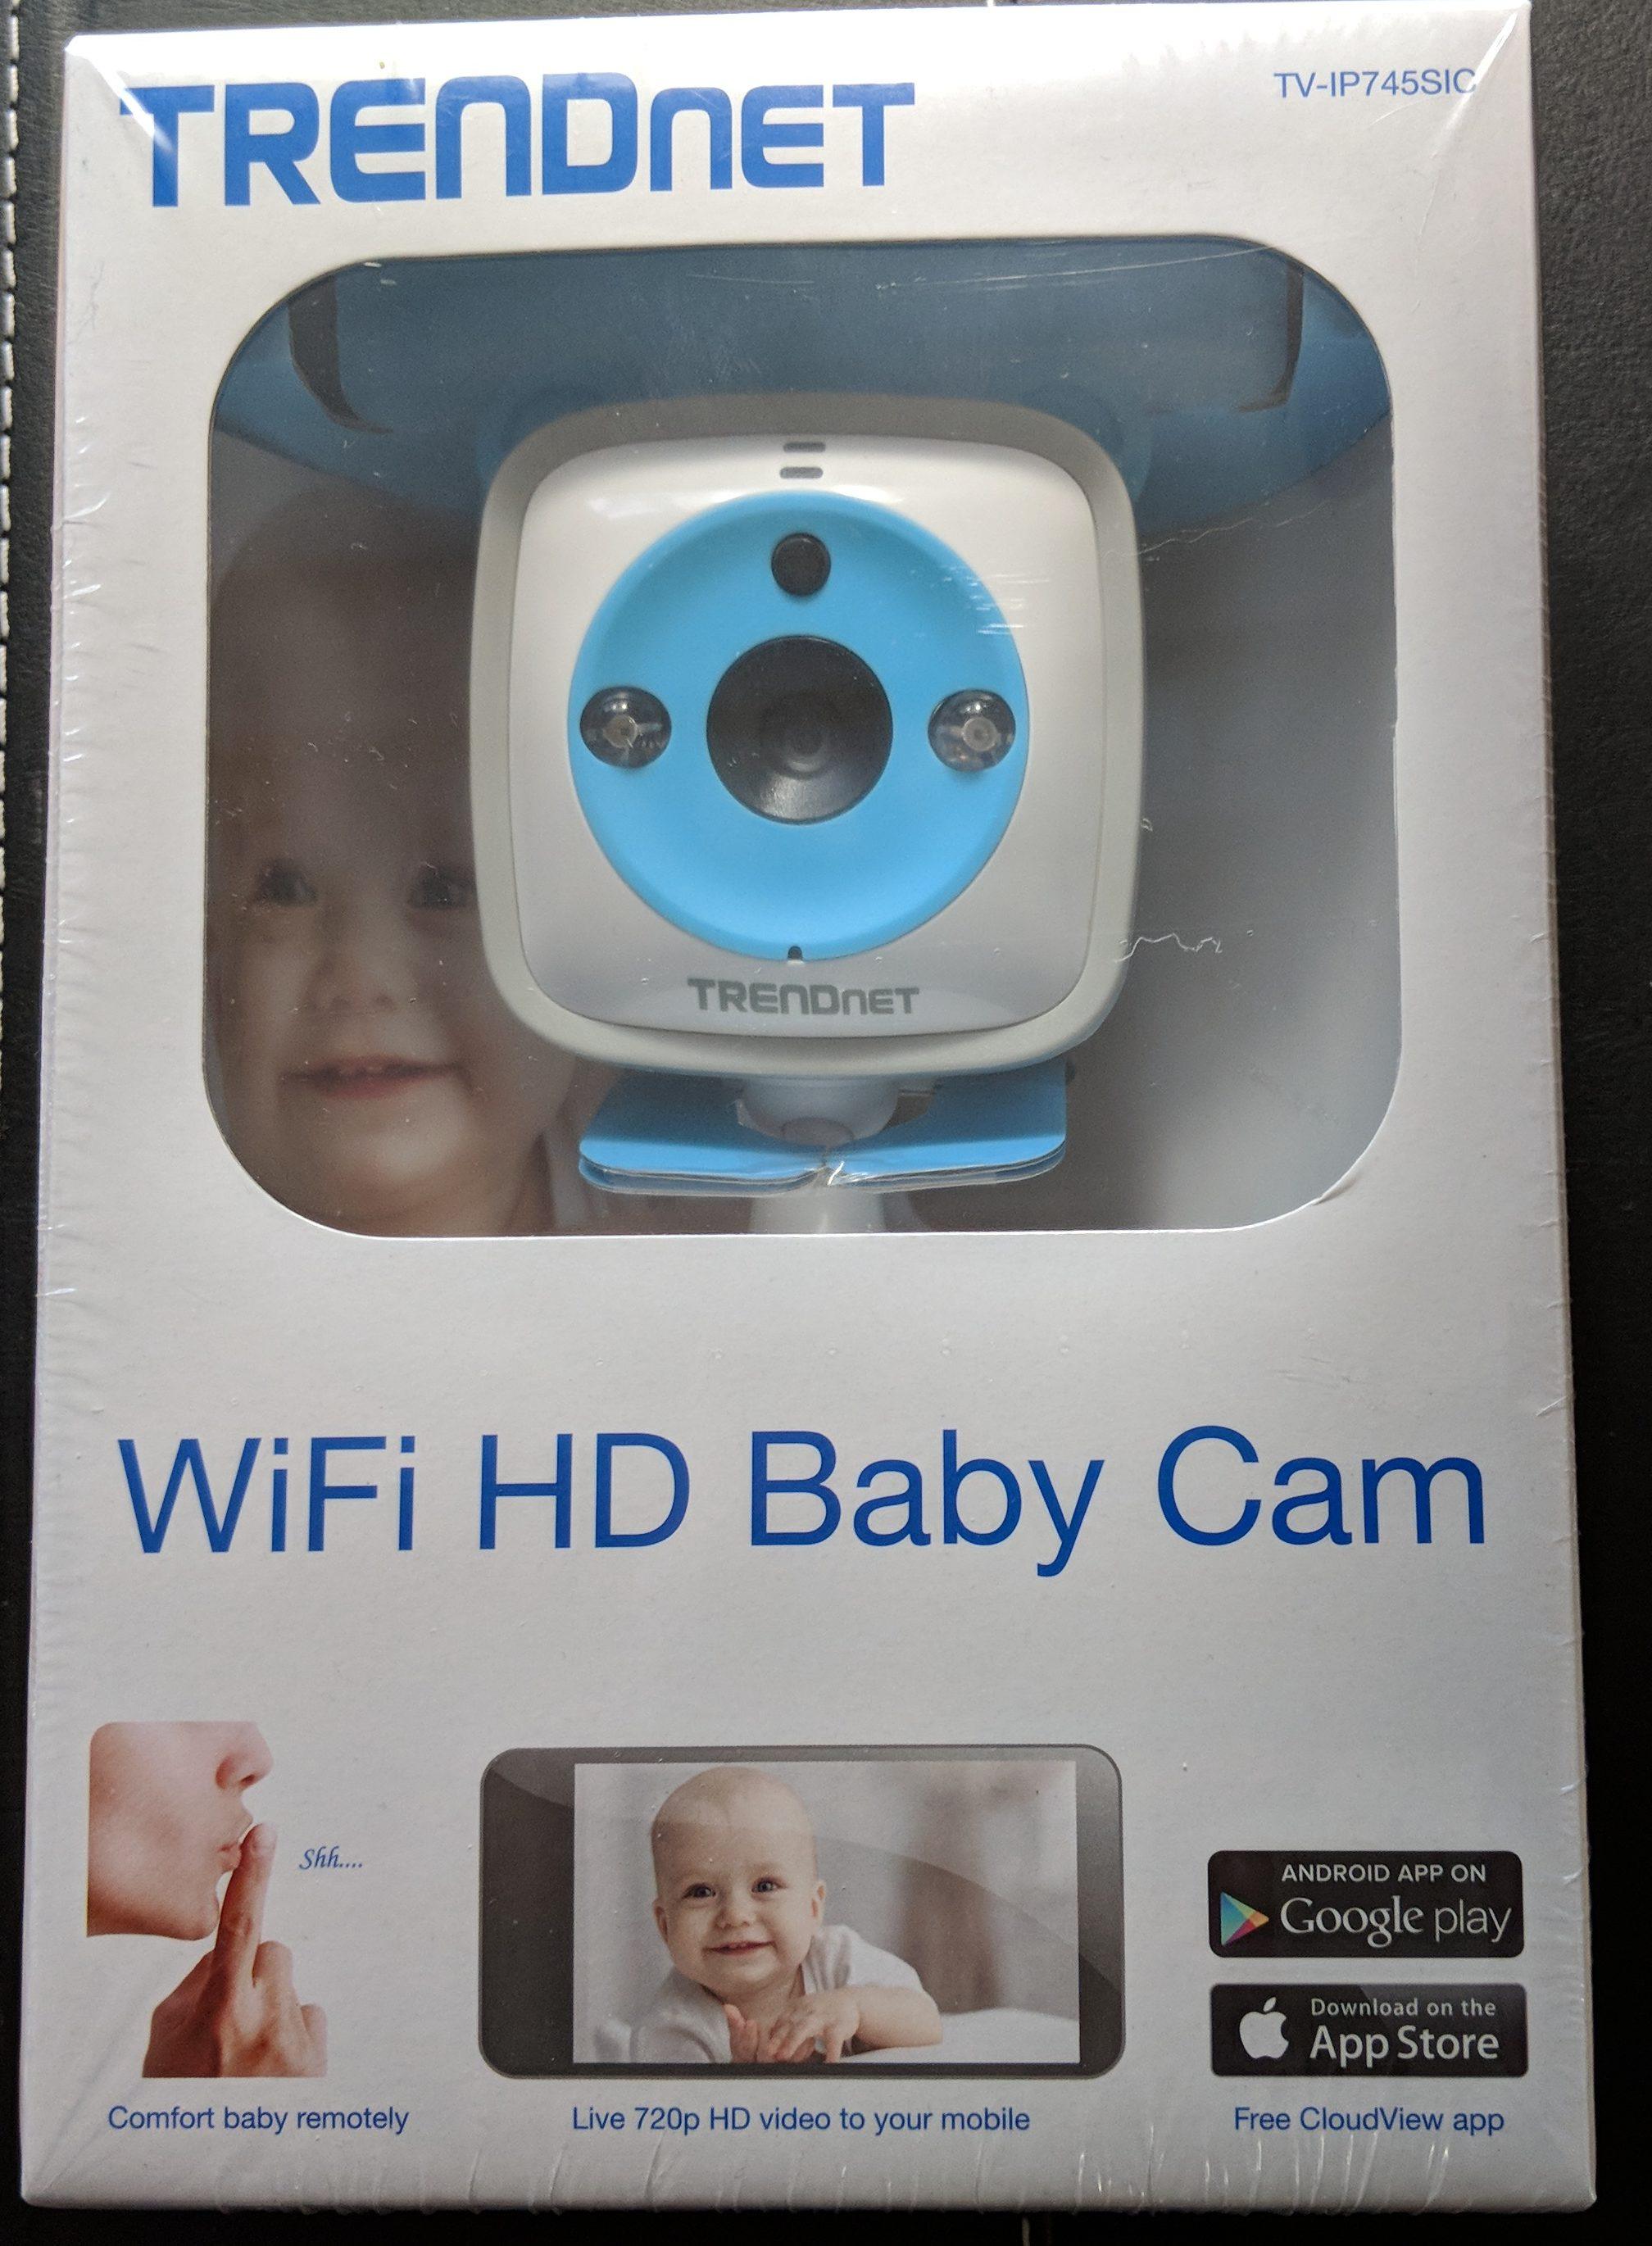 What are we buying? A wifi baby camera. Will it be secure?